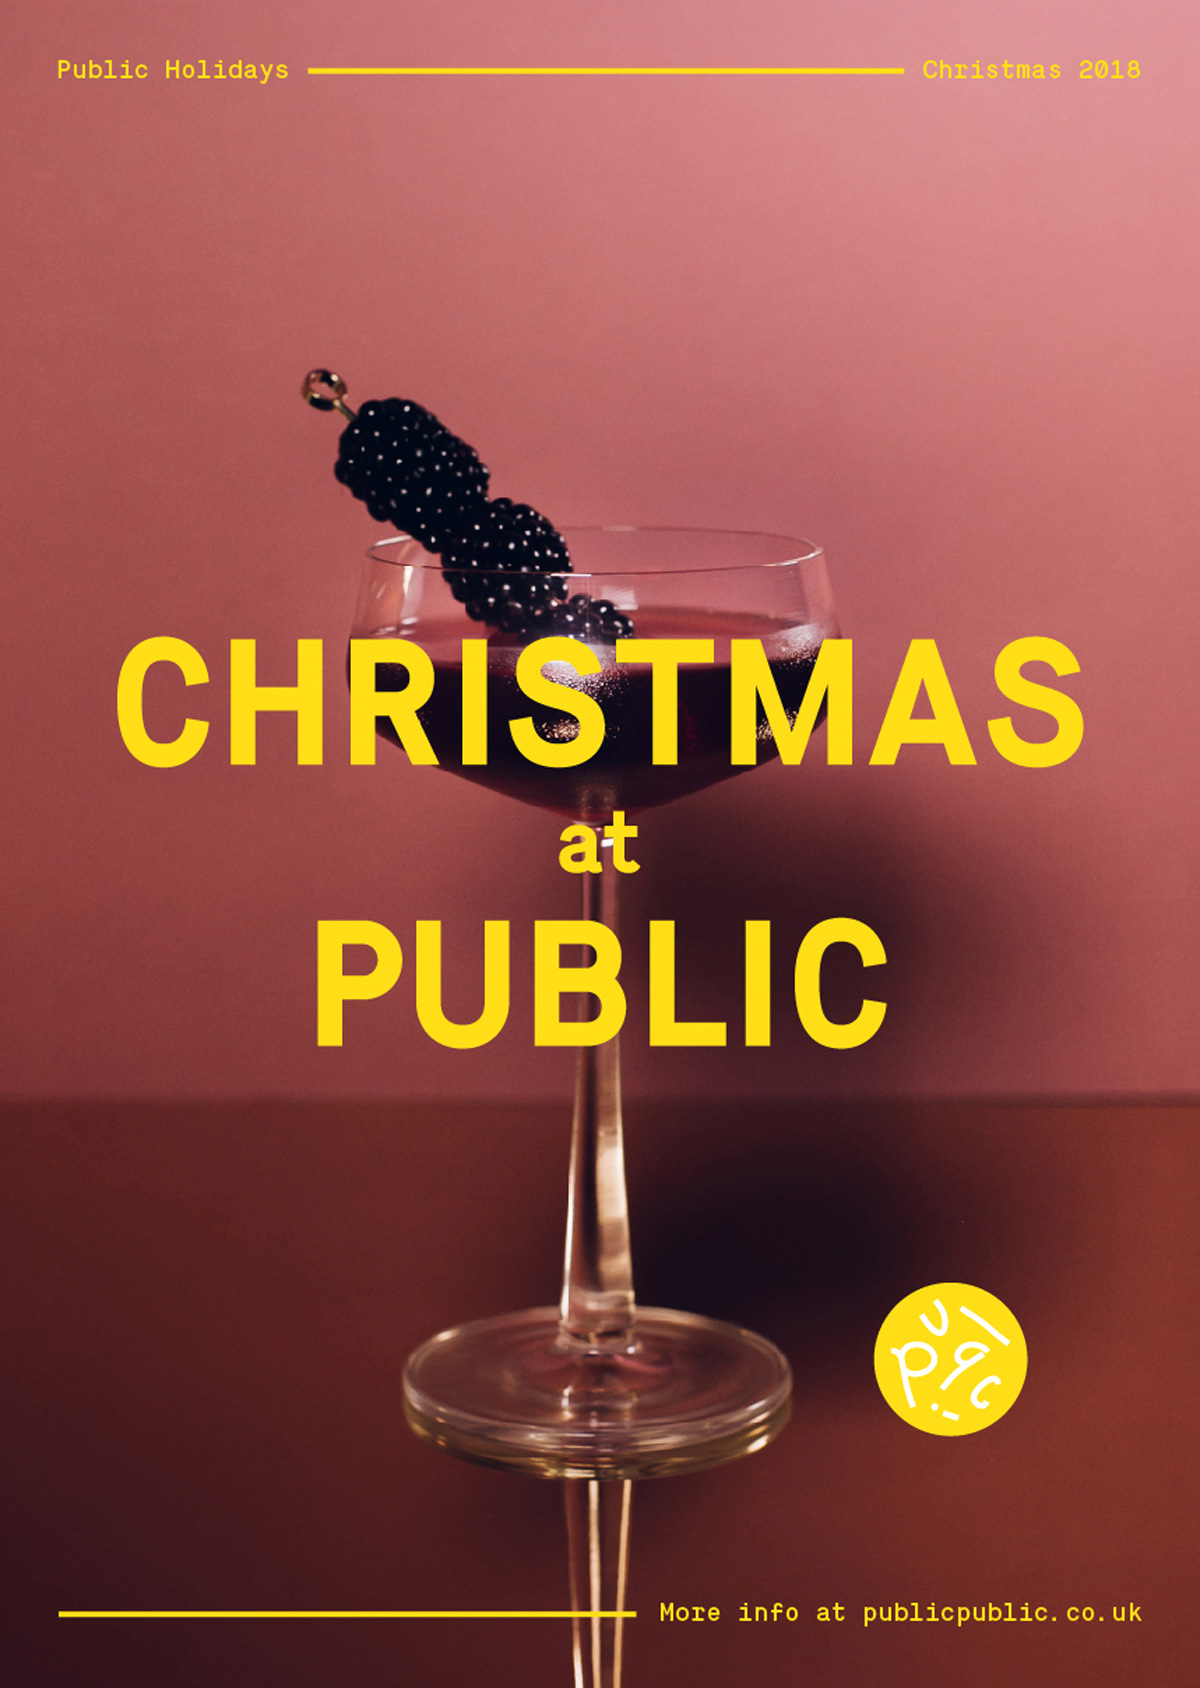 Public Christmas Poster